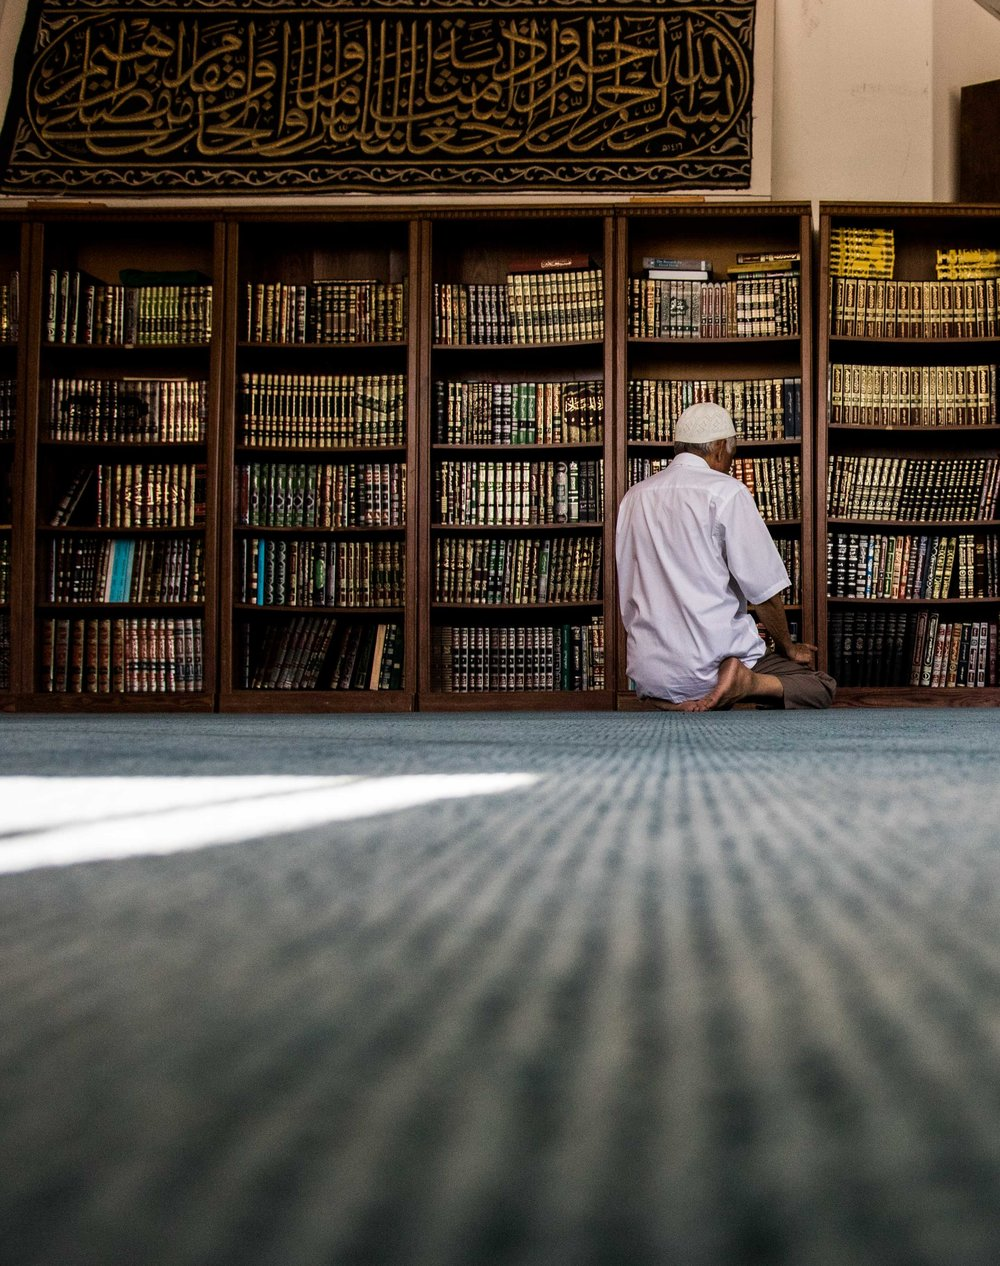 A man sits and prays in the library of the Fahad Mosque in Culver City, Calif.